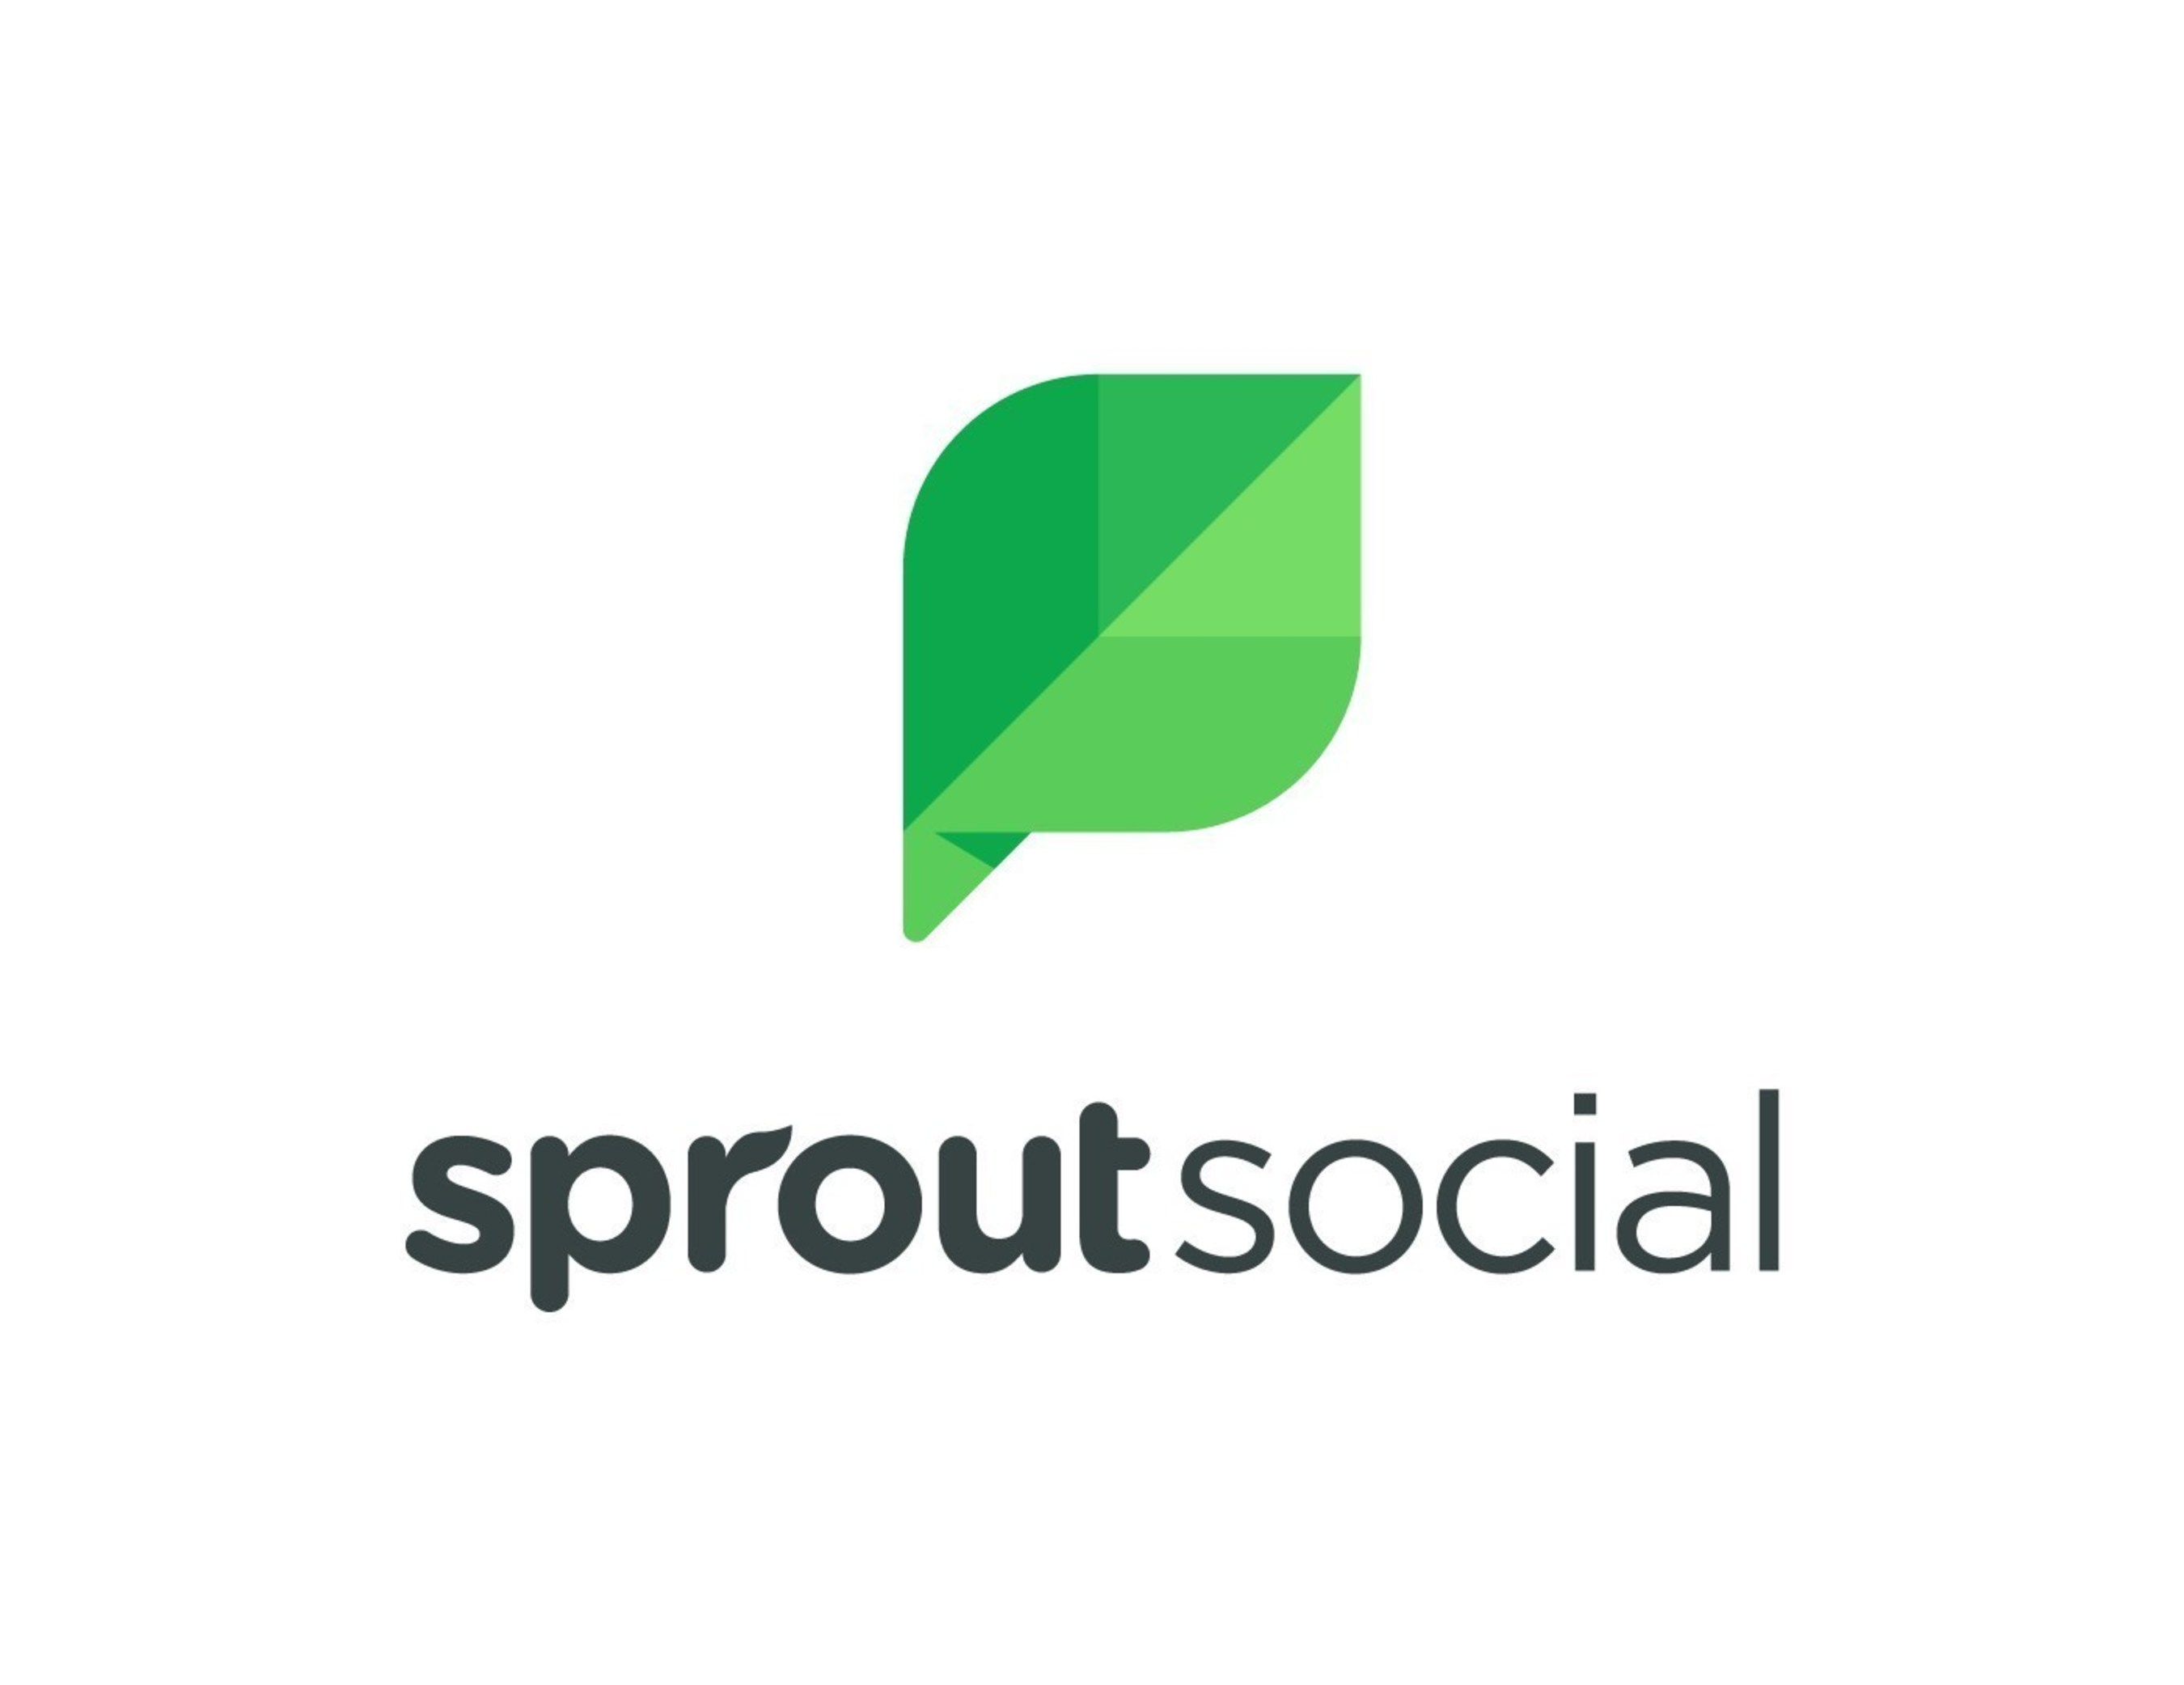 Sprout Social Partners With Twitter on Customer Care Initiative